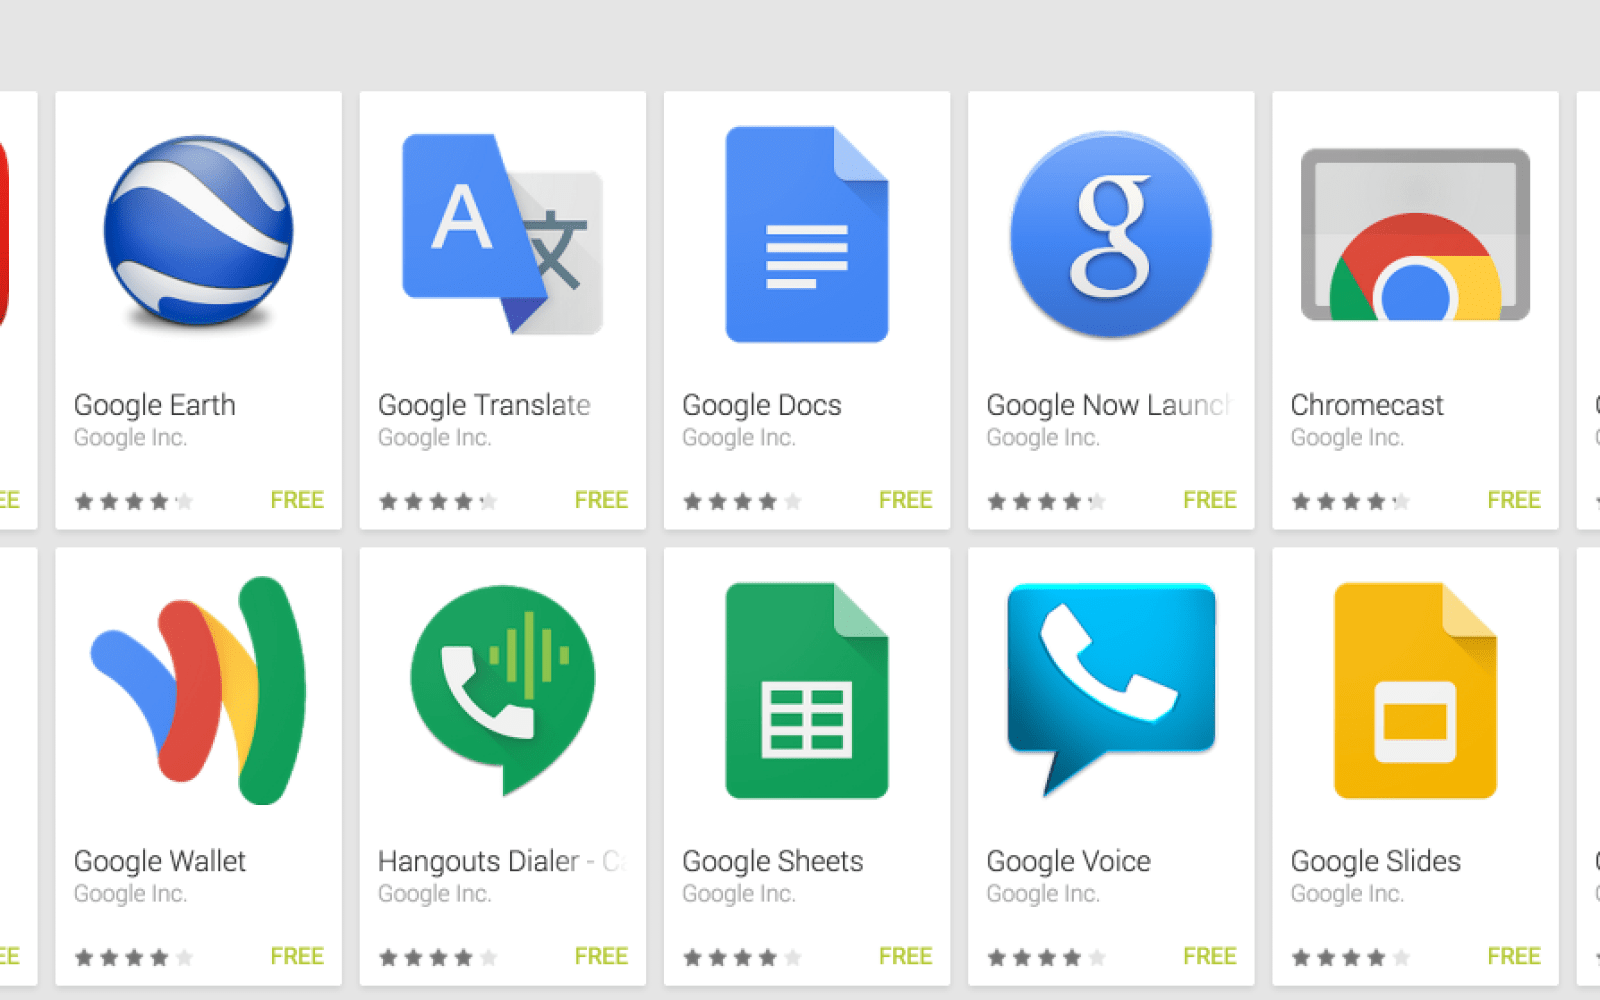 App Roundup: Google updates Maps, YouTube, Inbox, Play Music